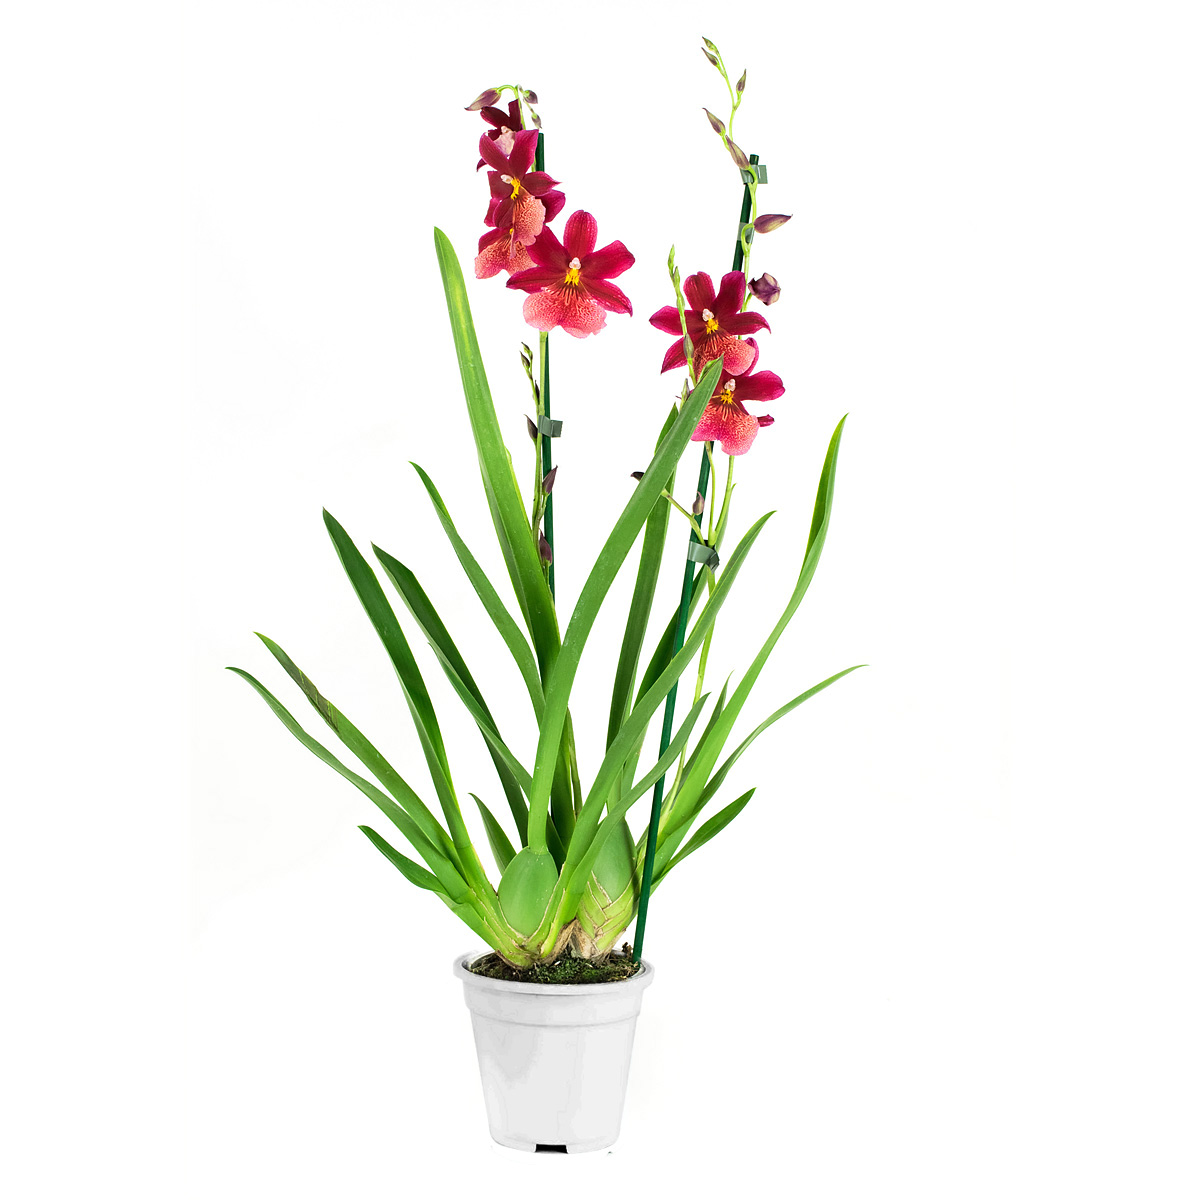 Orchidee 60 cm: Cambria Nelly Isler